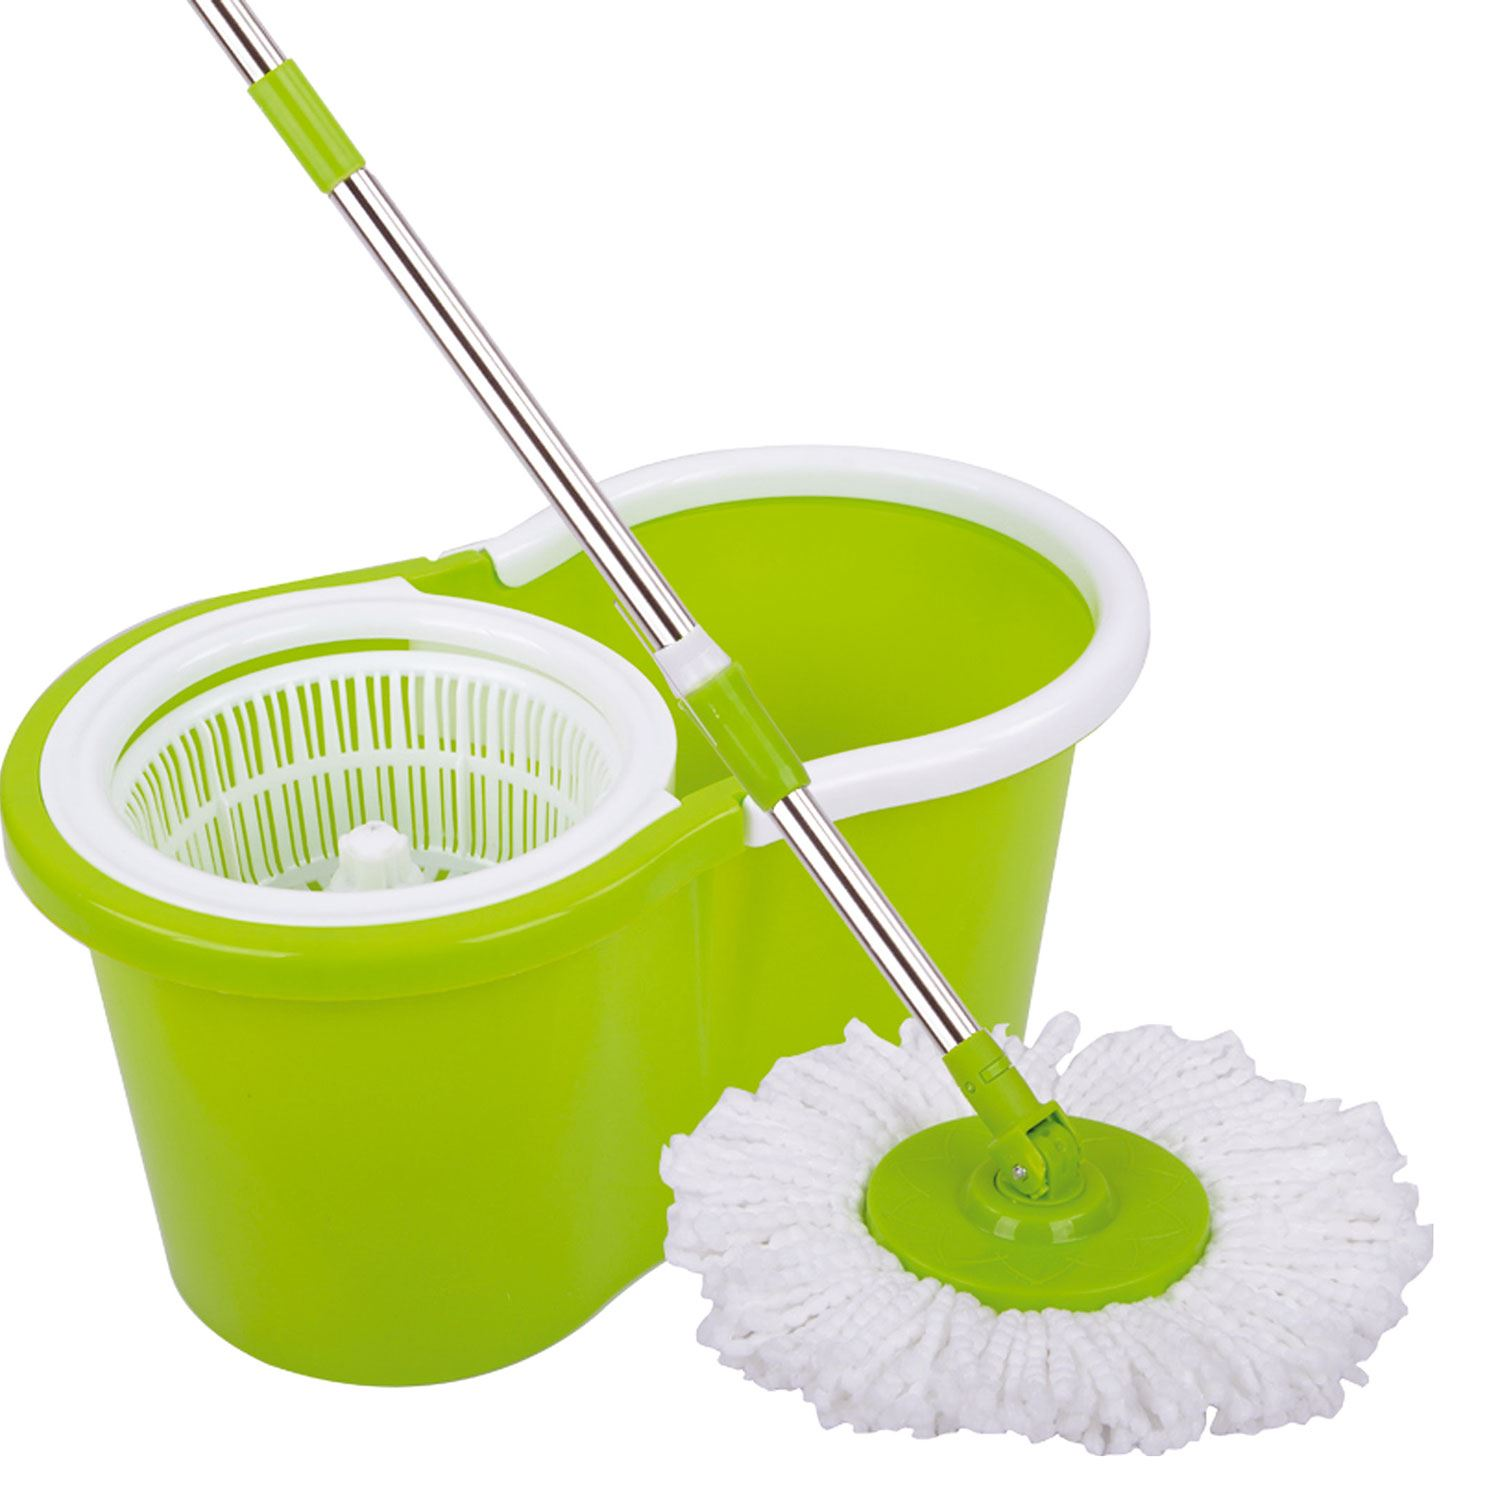 Spin Mop 2